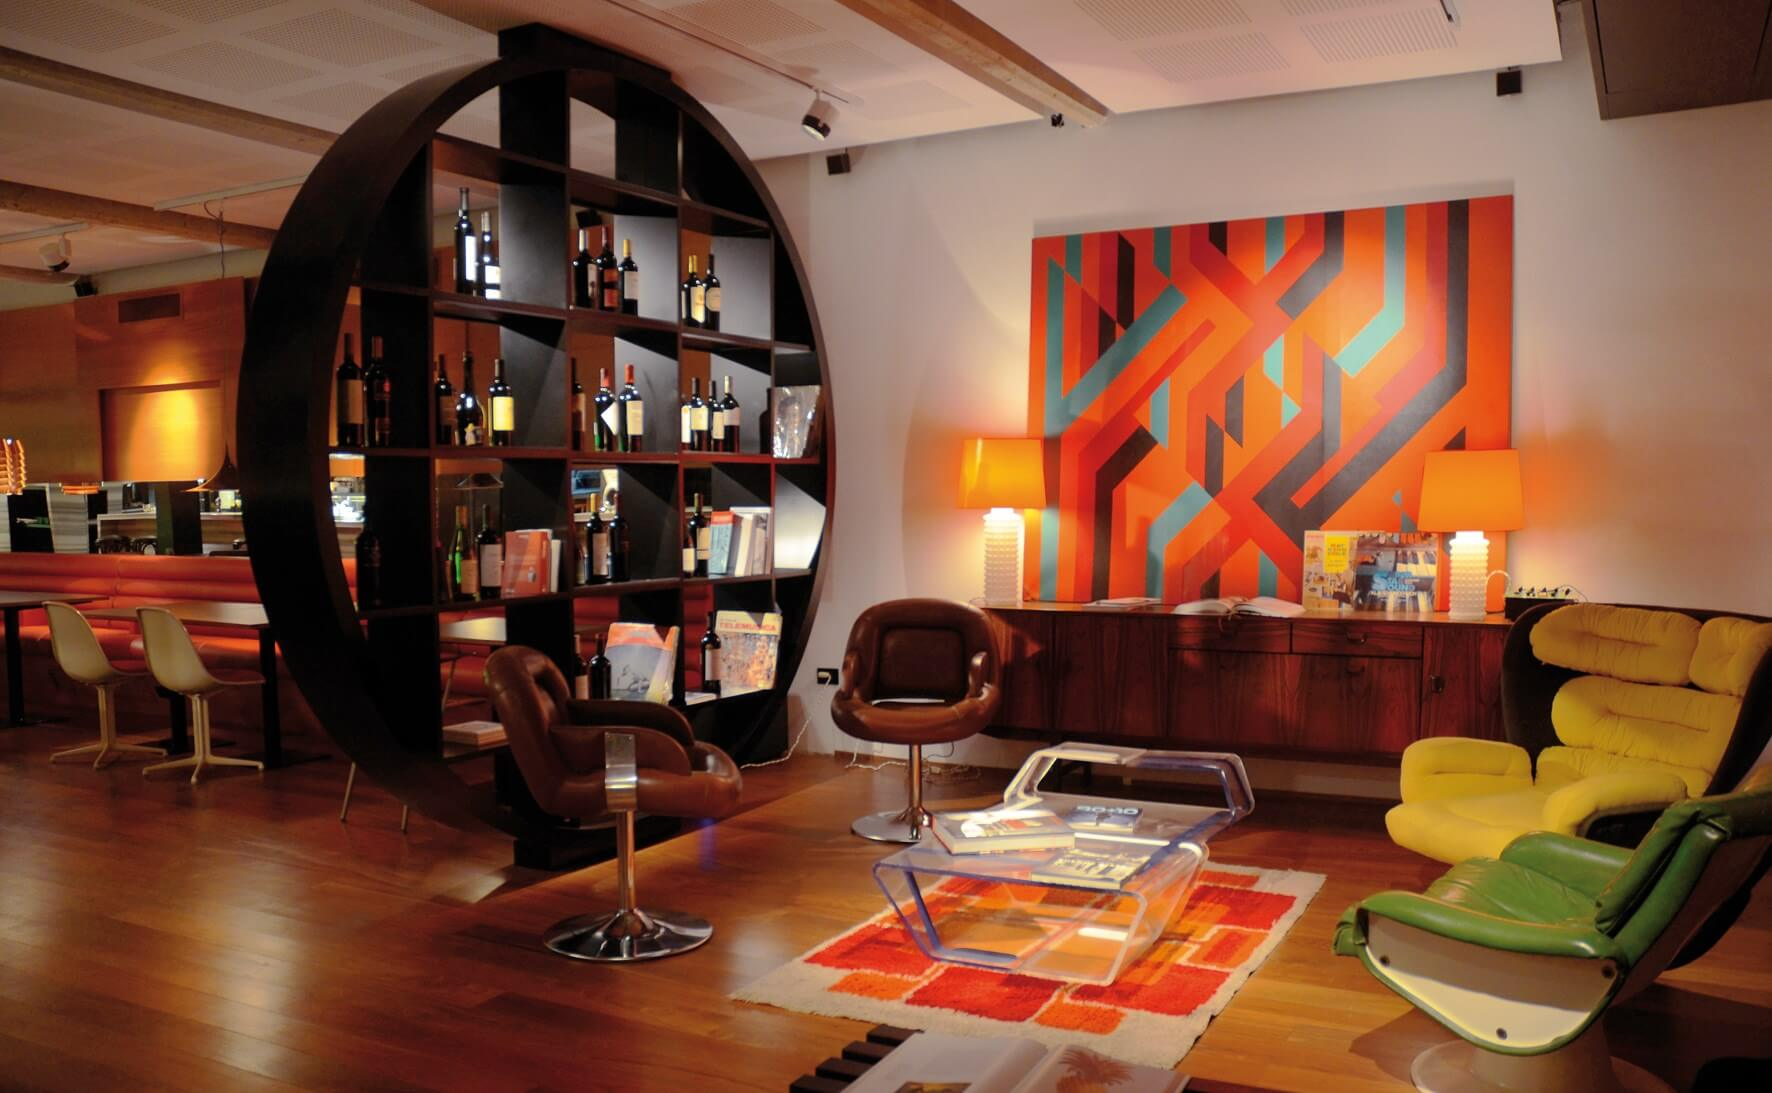 6 Things to Make Your Living Room Instantly Retro. nice modern idea in the frame of the classic substance